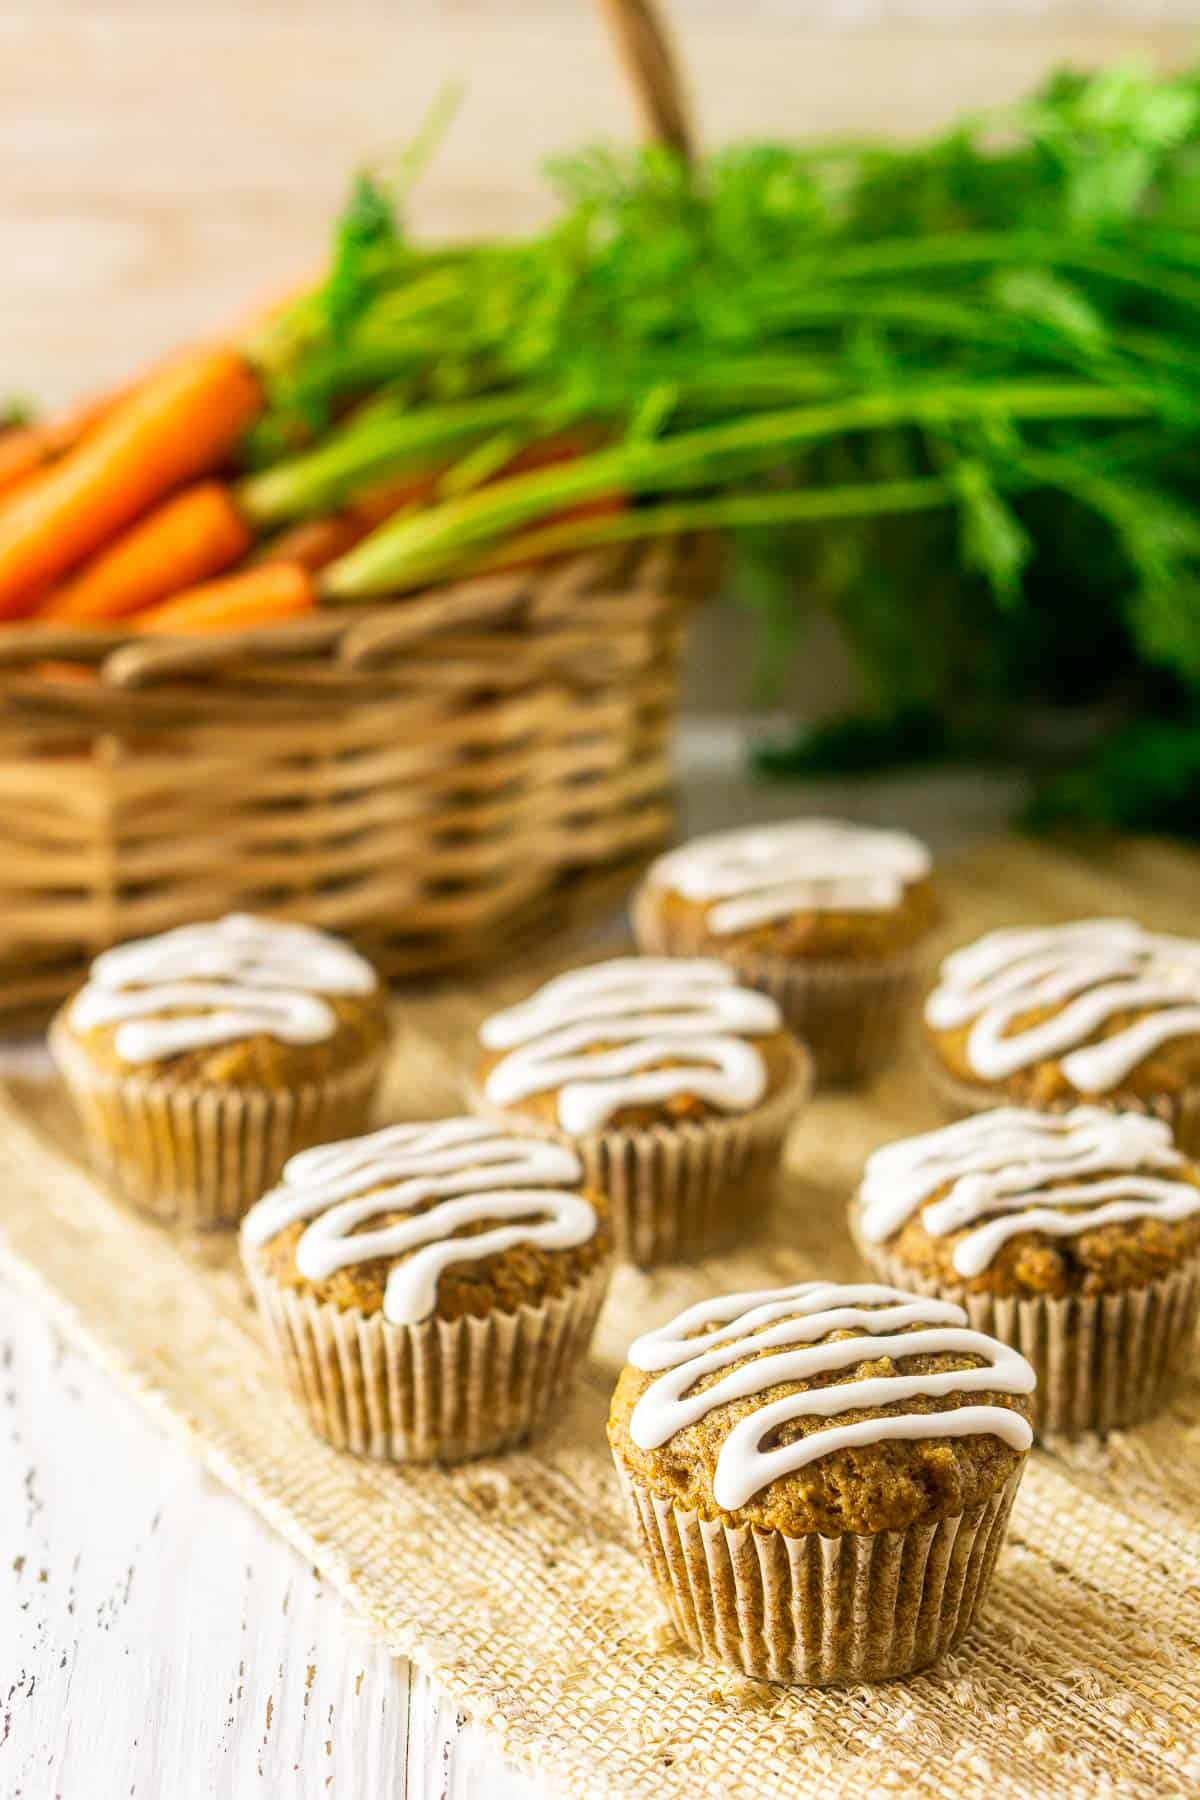 The carrot cake muffins on a white wooden board with a basket of carrots in the background.